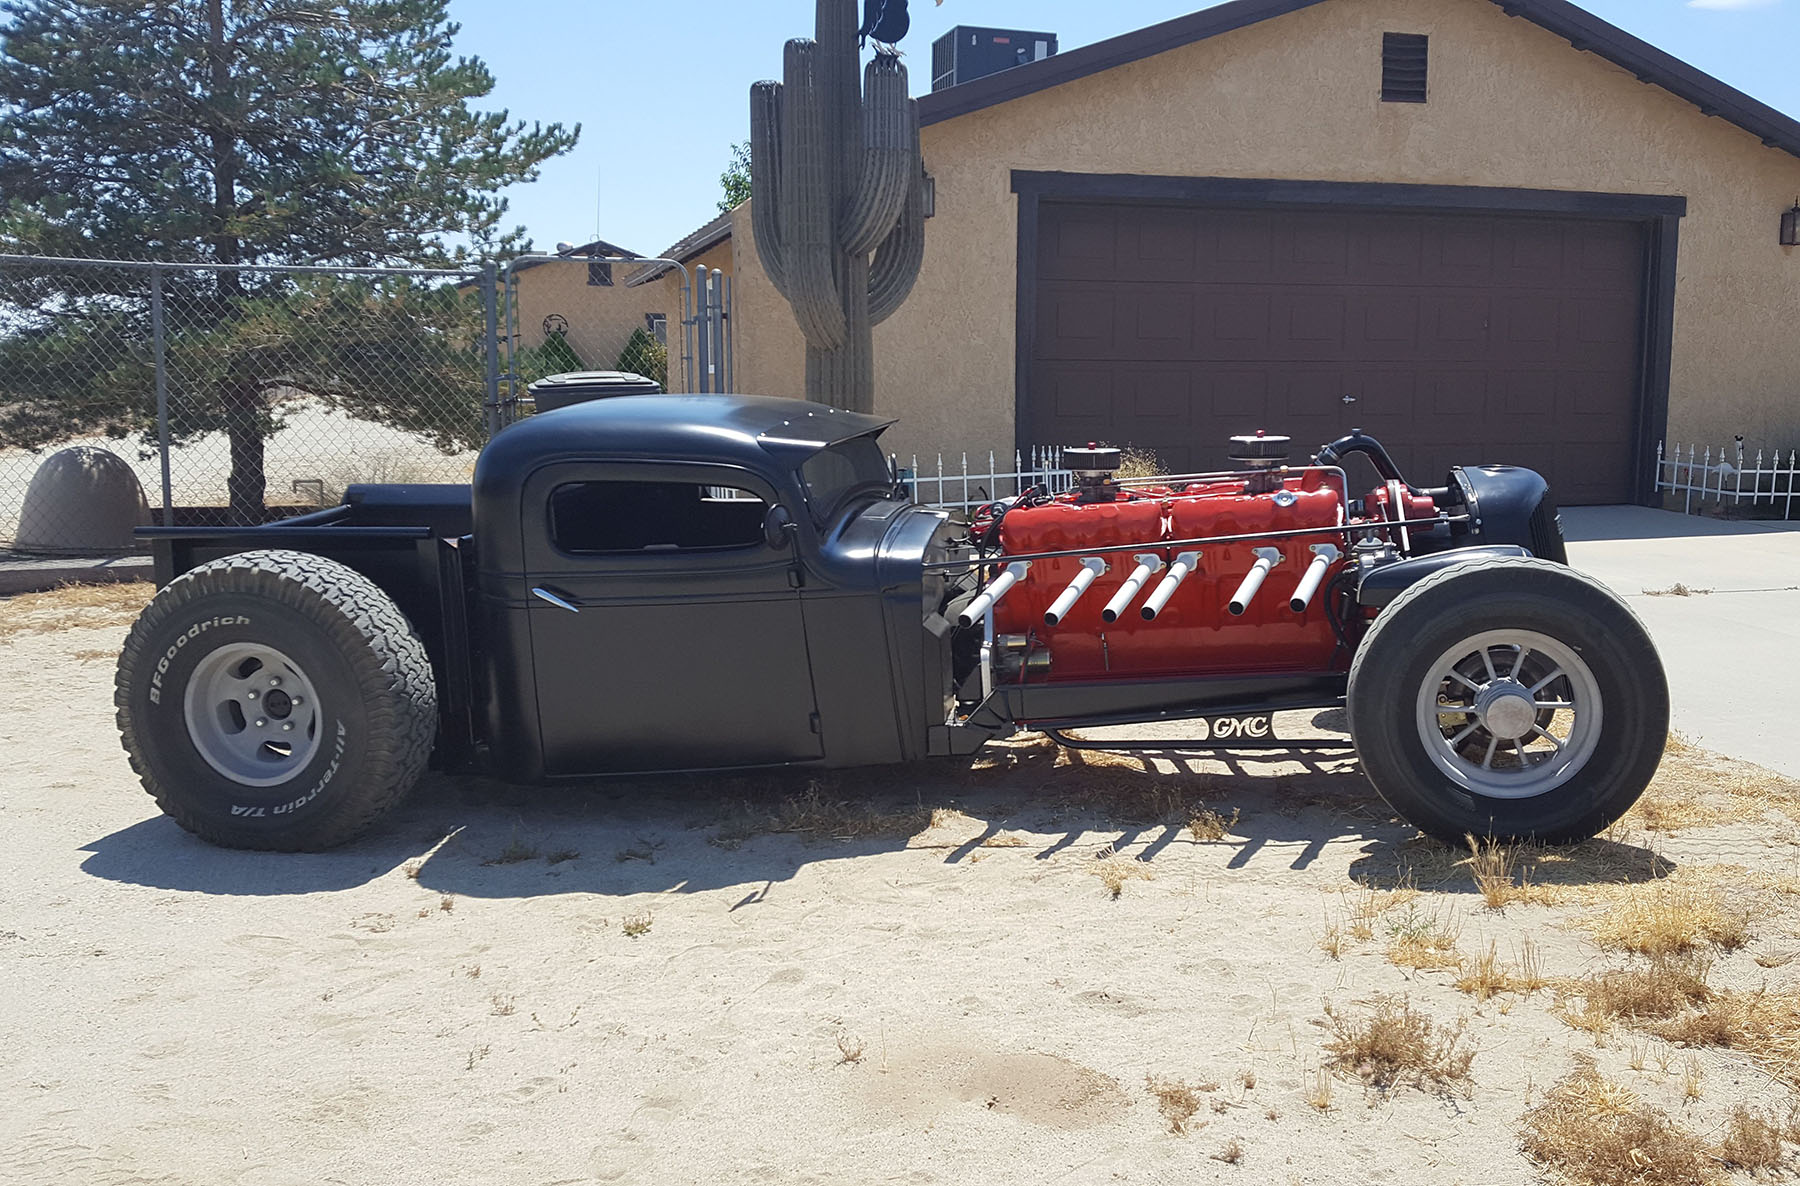 1935 GMC Rat Rod with a 702 ci Twin Six V12 – Engine Swap Depot